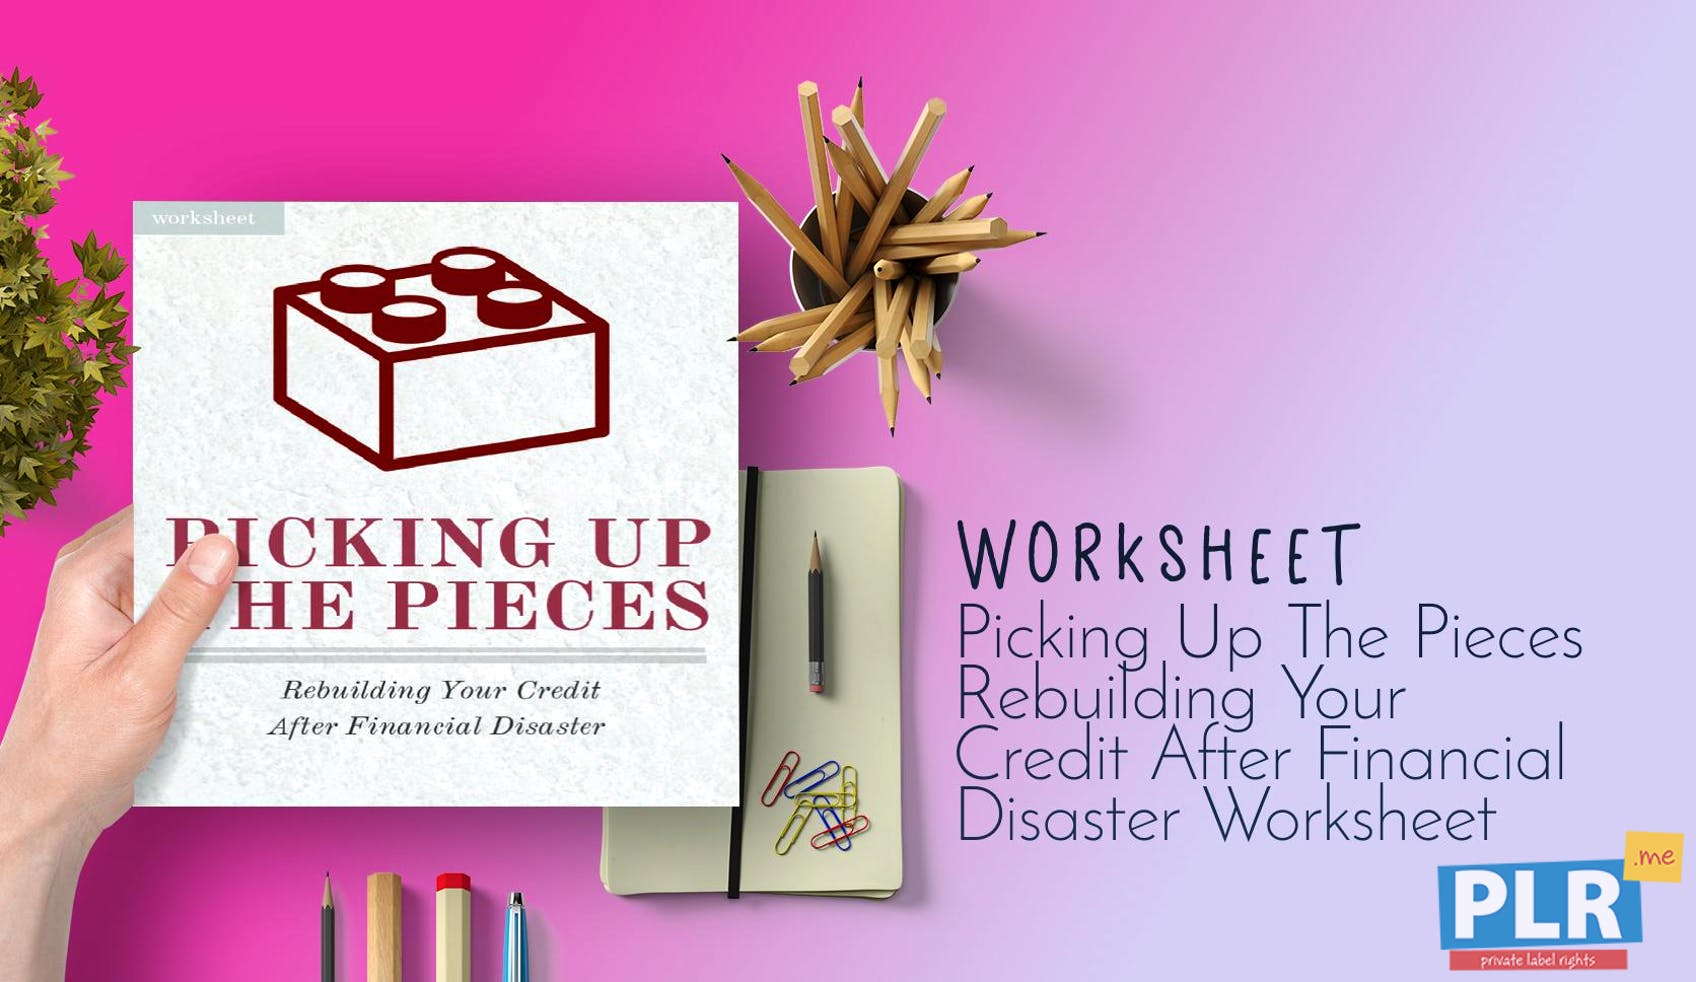 Picking Up The Pieces Rebuilding Your Credit After Financial Disaster Worksheet